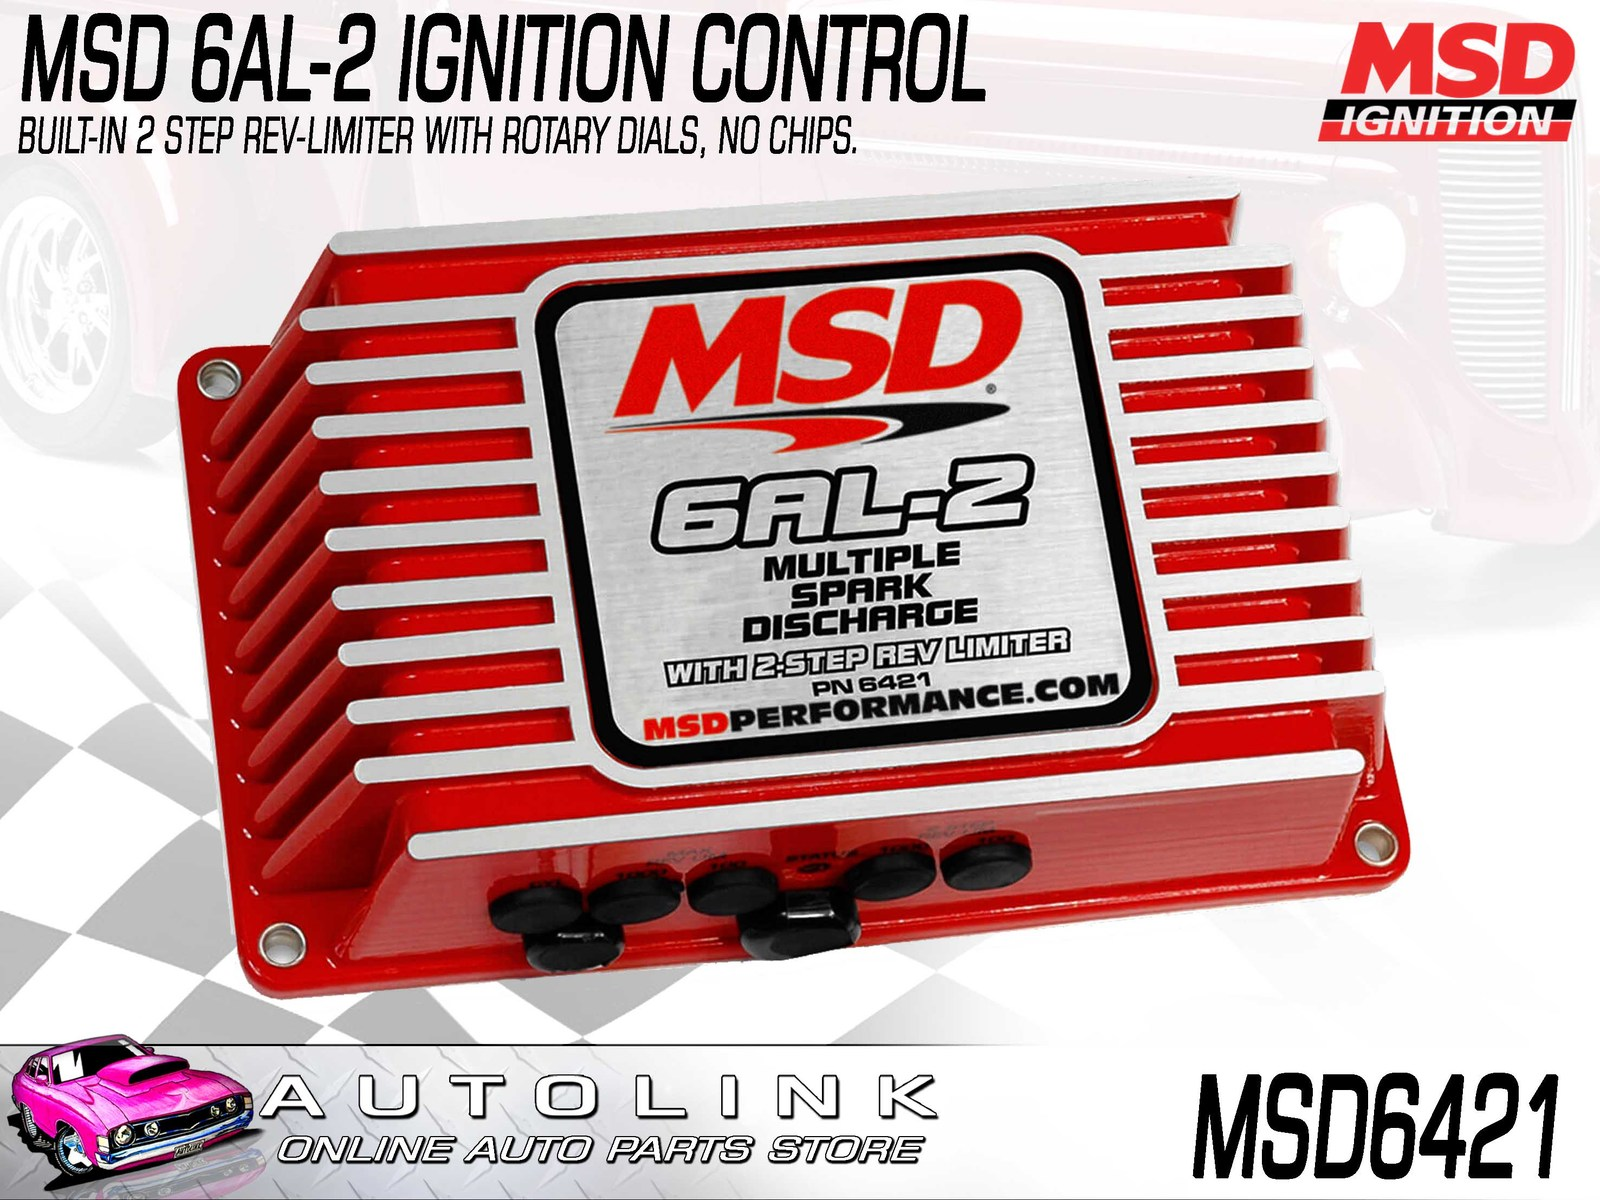 hight resolution of msd 6al 2 ignition control with 2 step rev limiter 535 volt msd6421